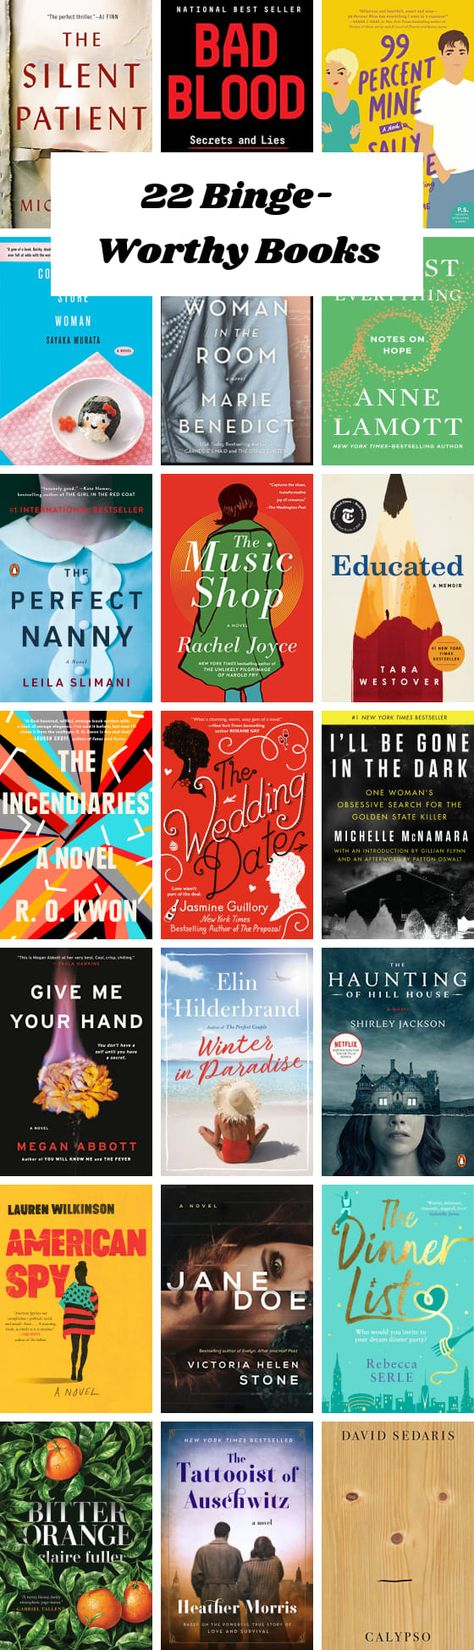 22 Binge-Worthy Books